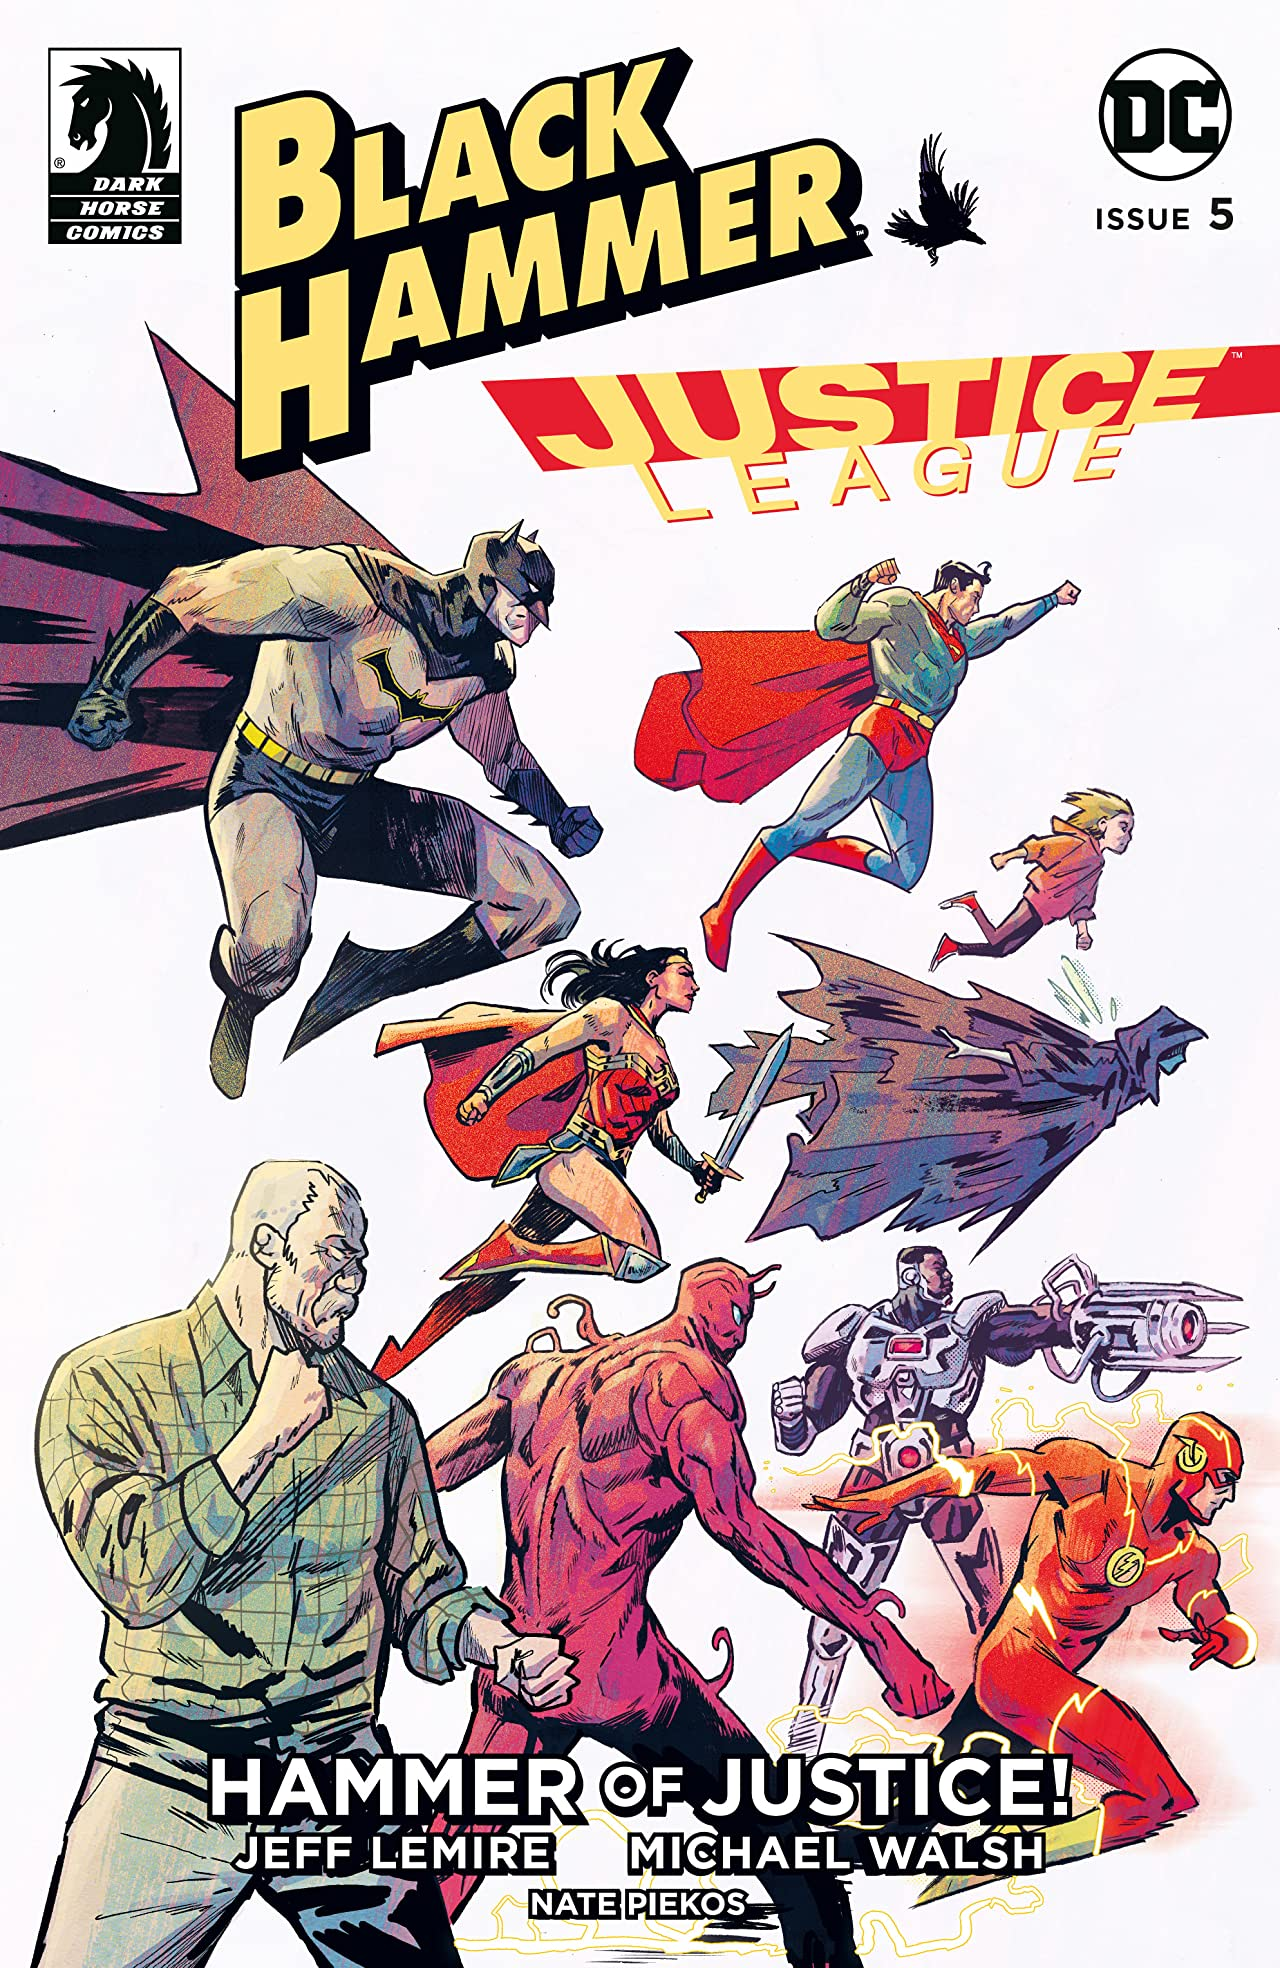 Black Hammer/Justice League: Hammer of Justice! No.5